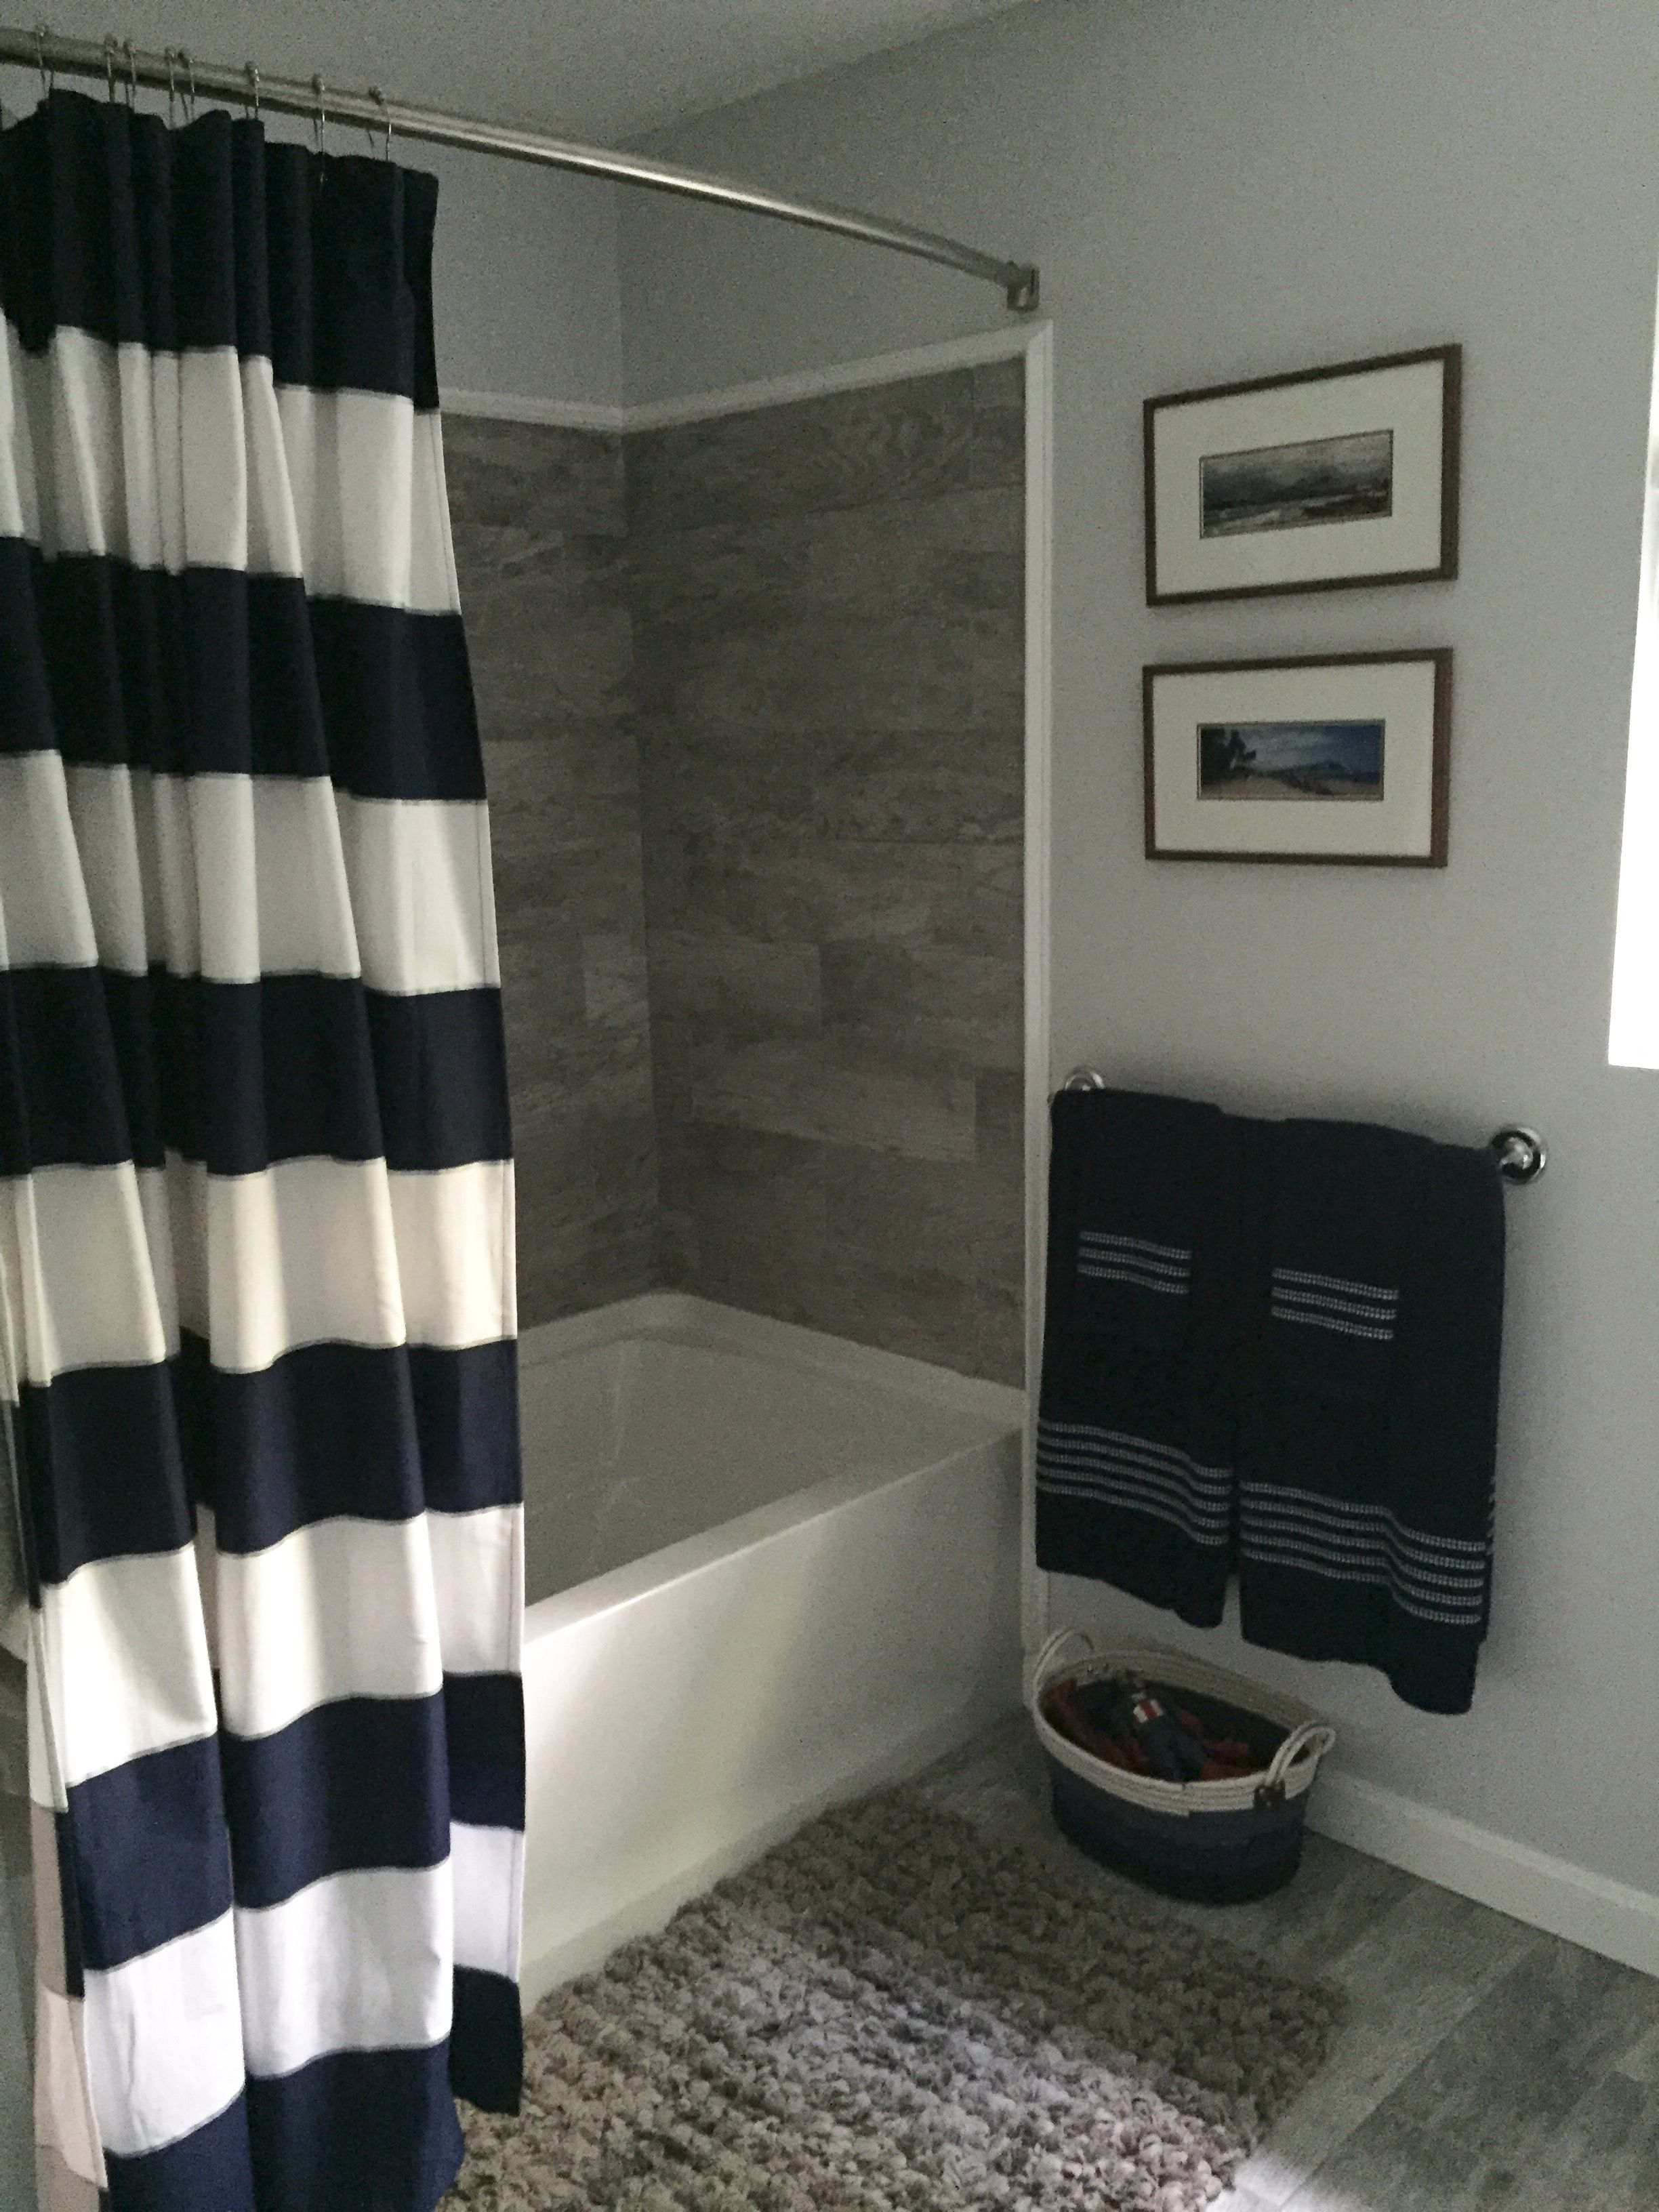 Navy Grey And White Bathroom Bathroom Remodel Grey Faux Wood Tile Striped Shower C Simple Bathroom Remodel Navy Bathroom Decor Inexpensive Bathroom Remodel